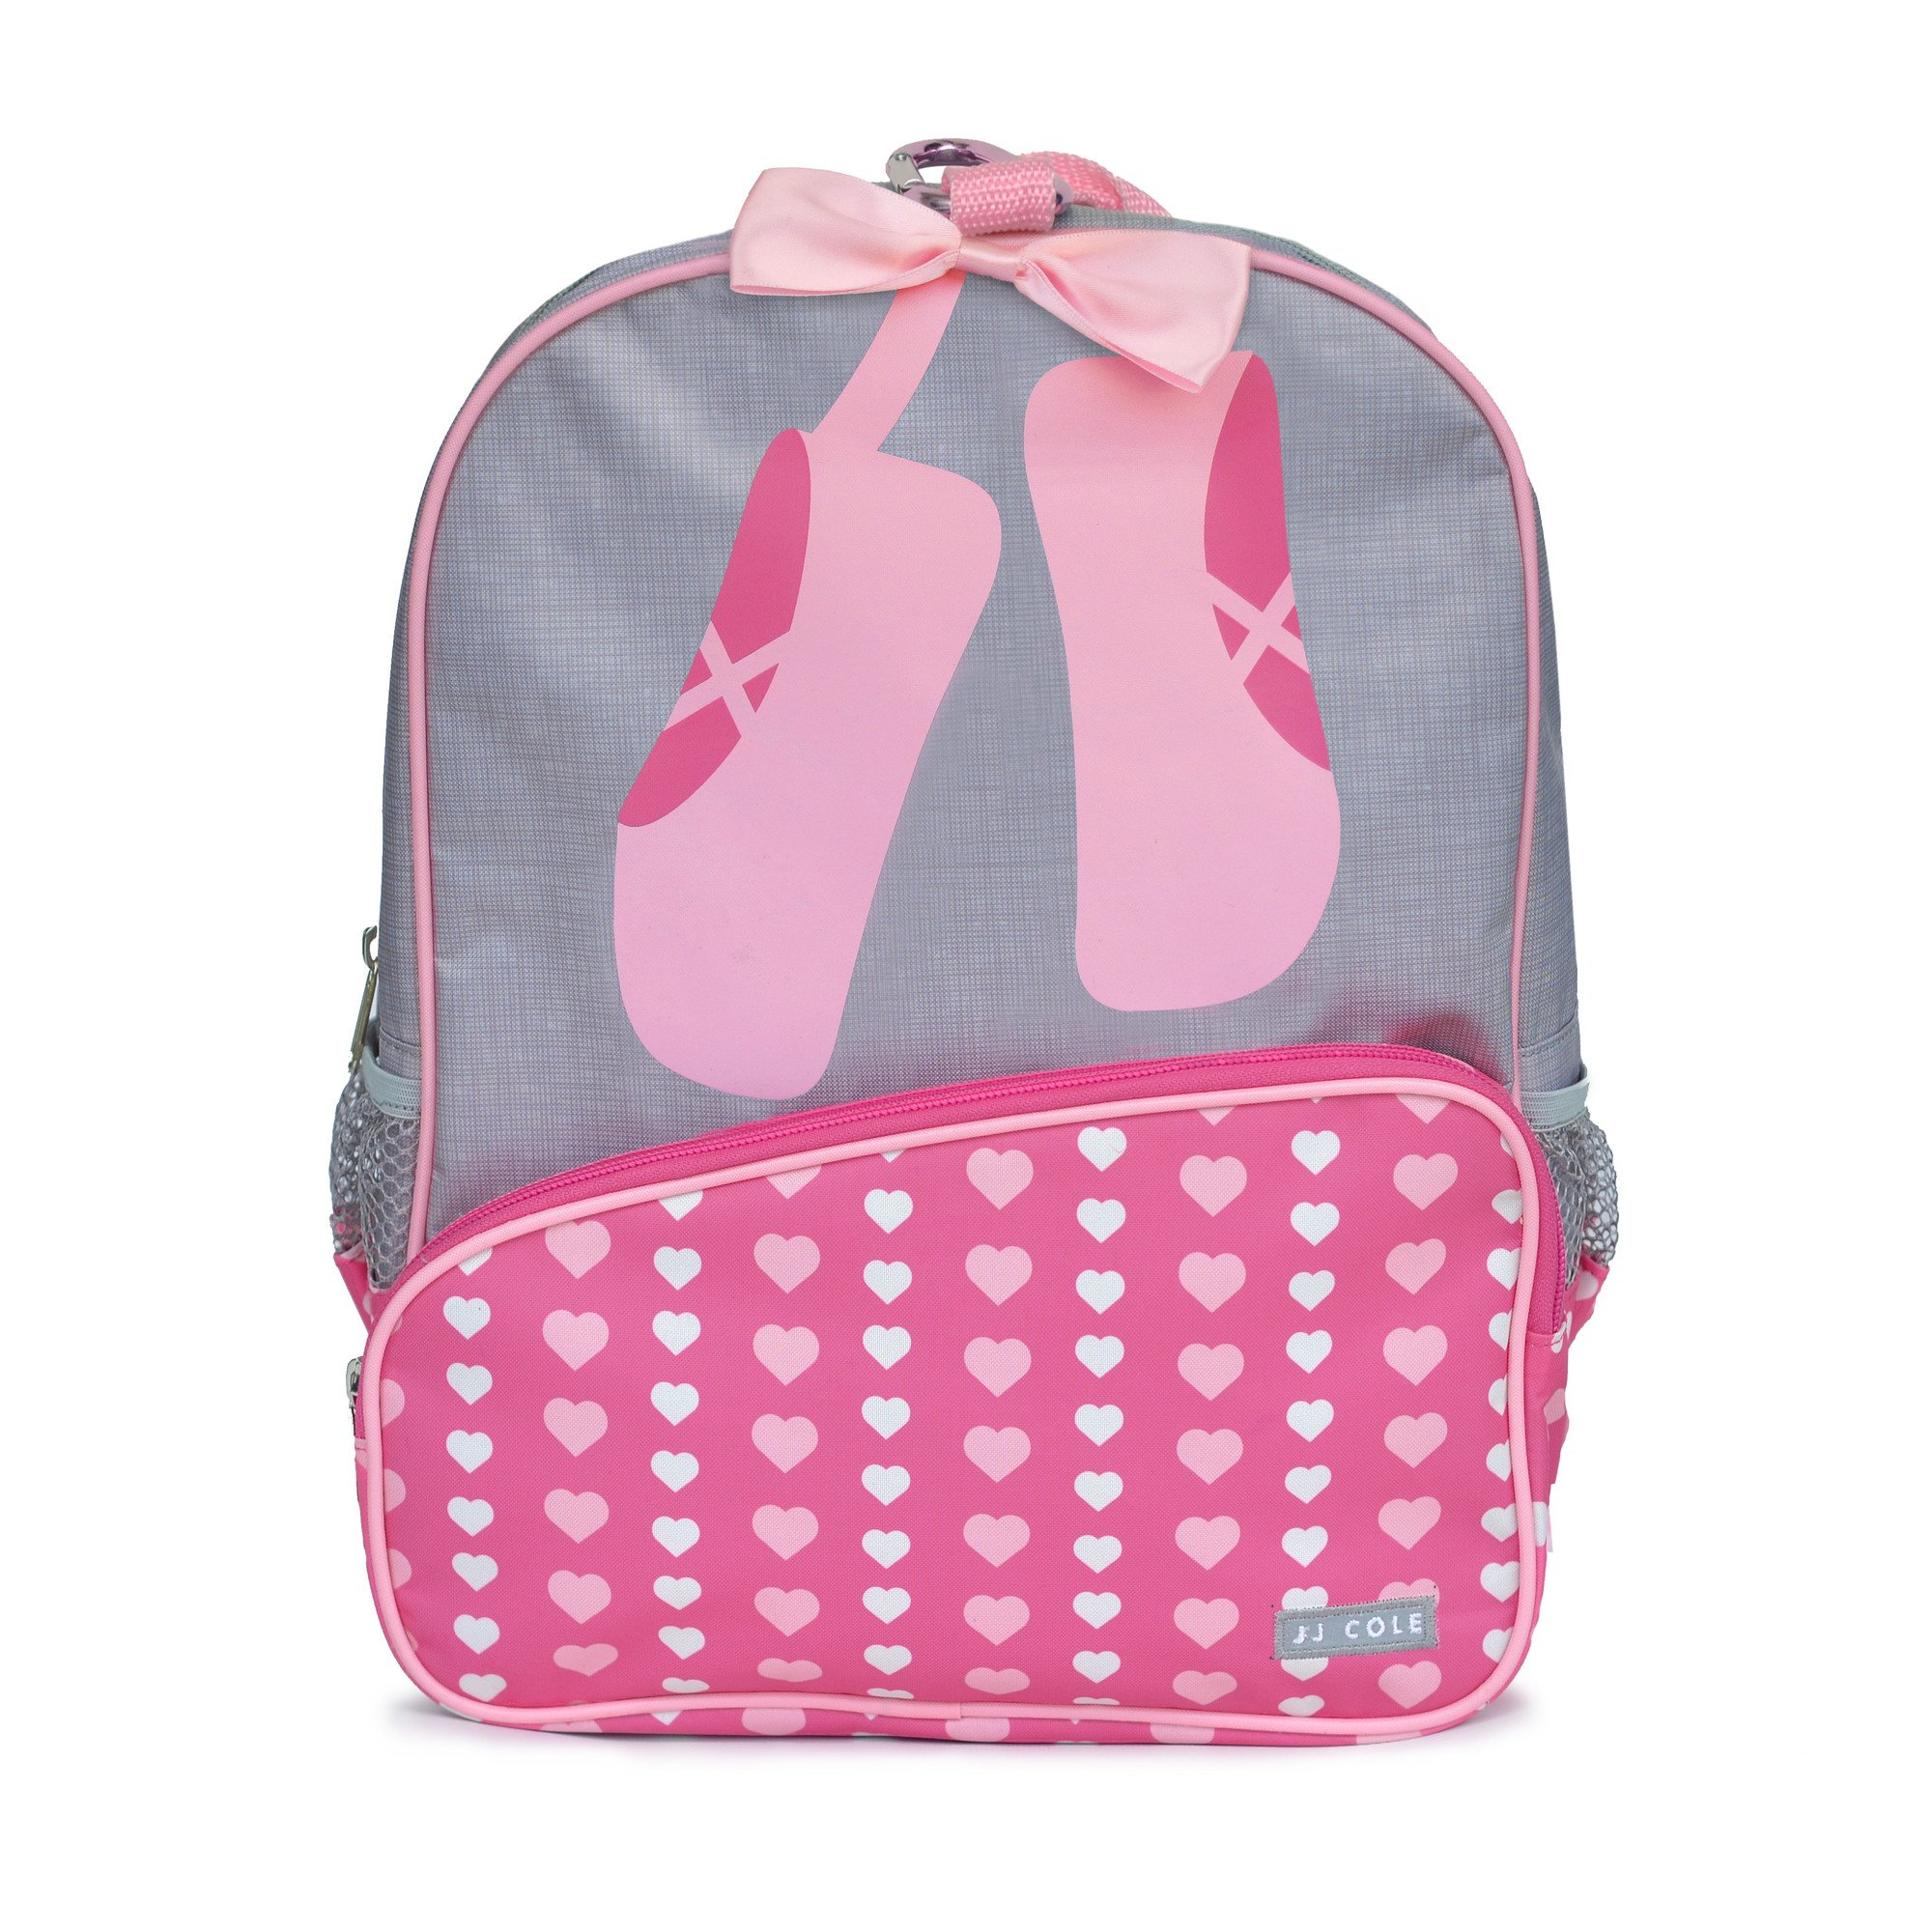 Little JJ Cole Toddler Backpack Ballet